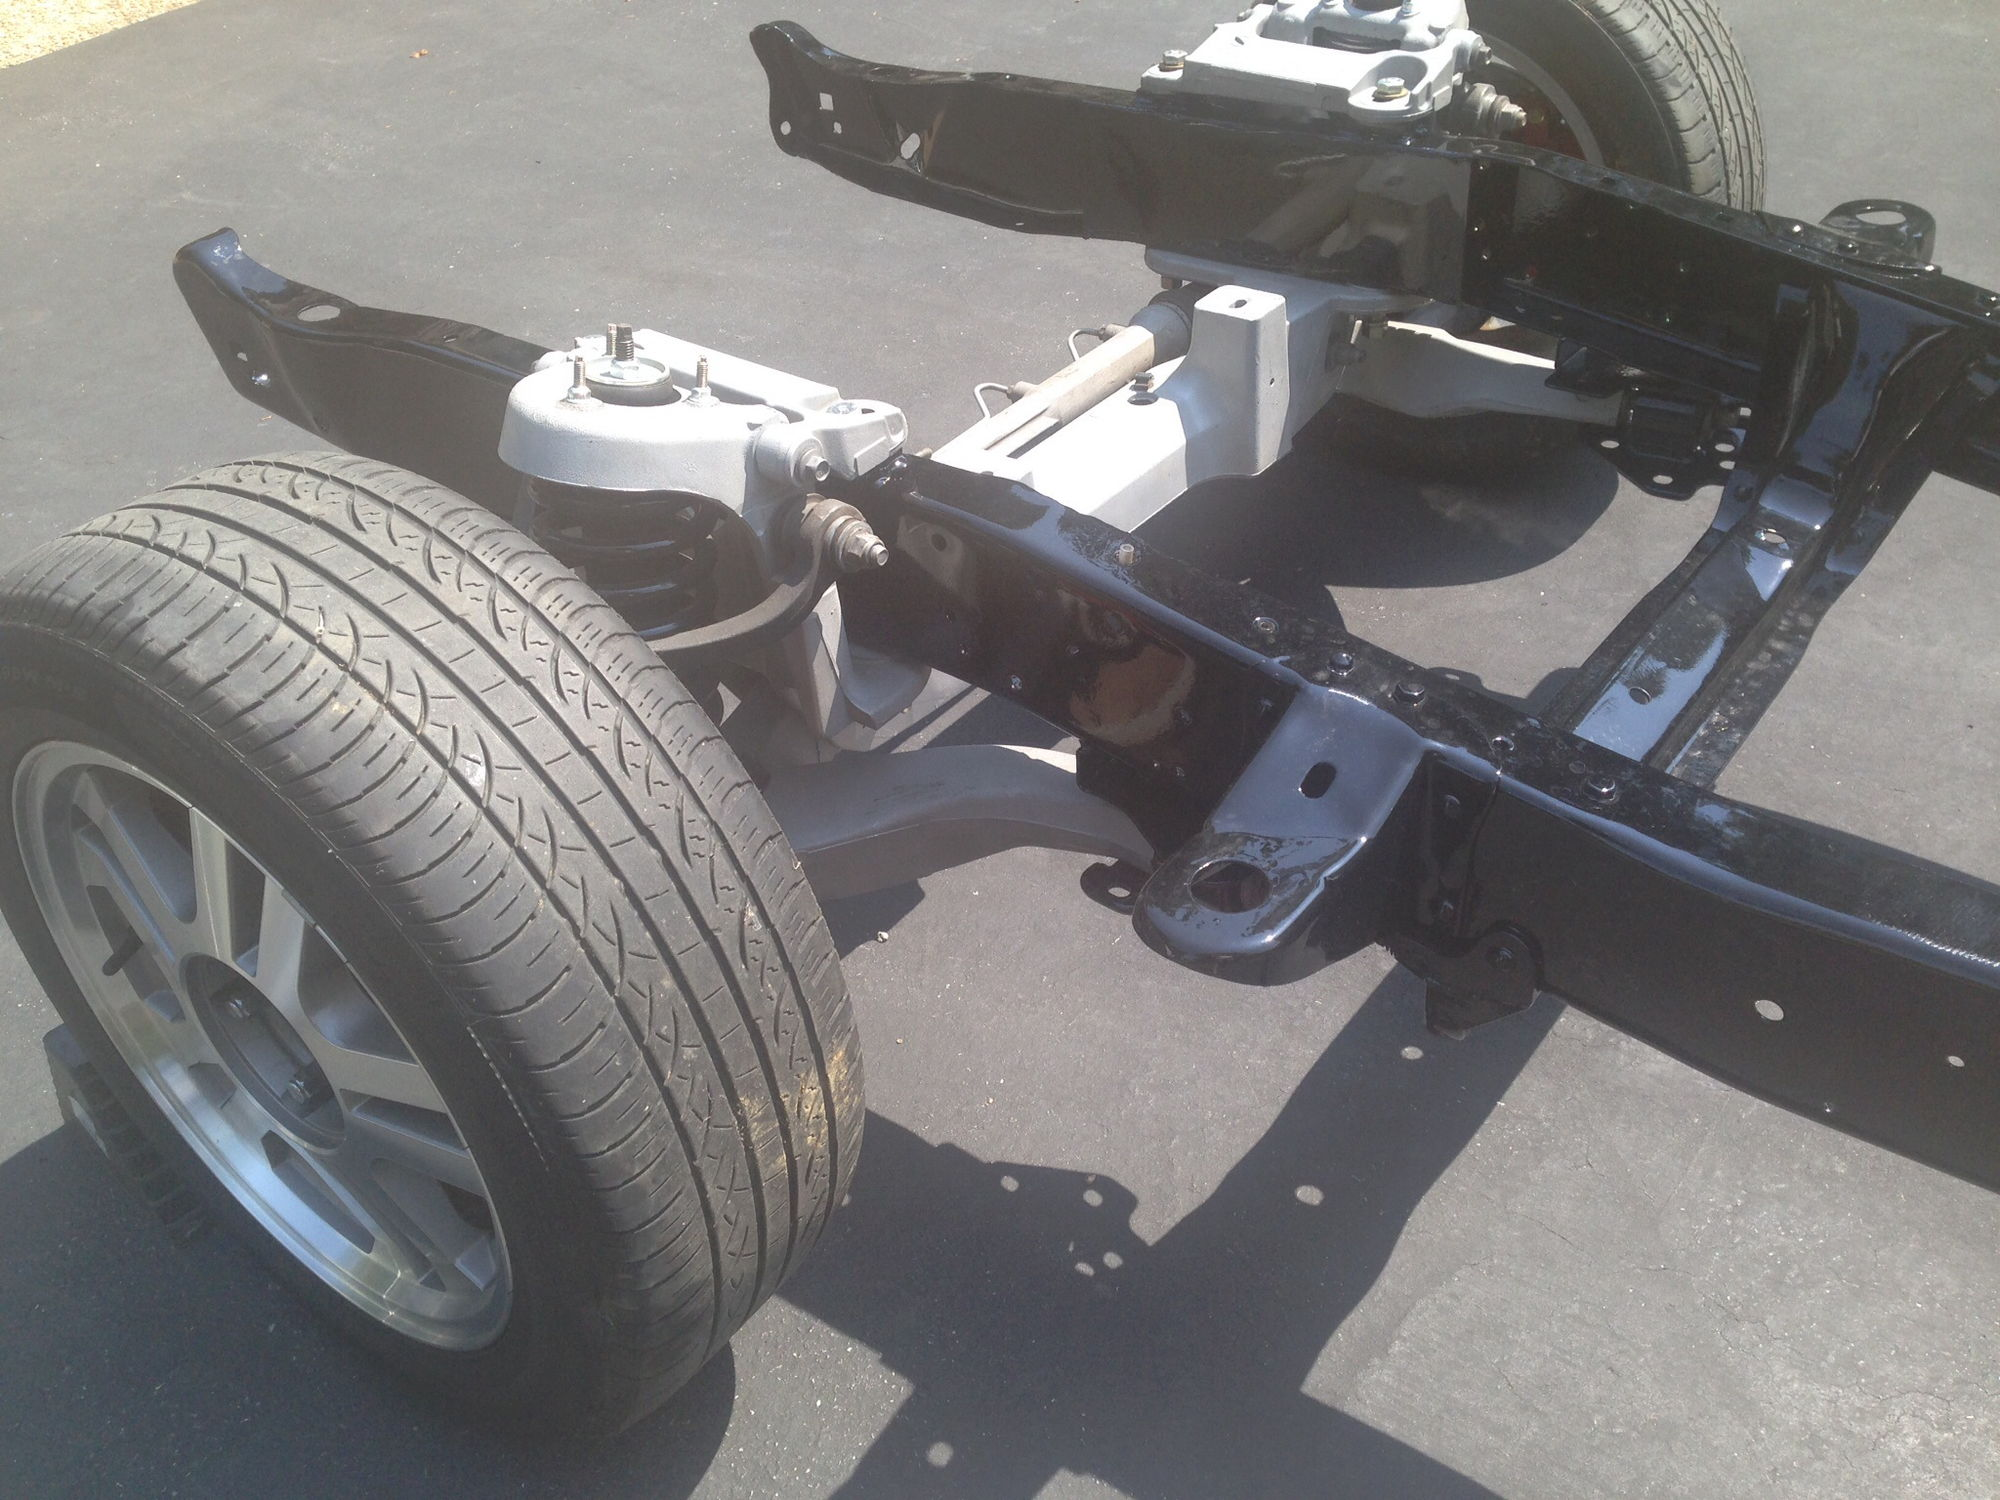 66 F100 Front Suspension Related Keywords Suggestions 1955 Ford Swap Build Page 3 Truck Enthusiasts Forums